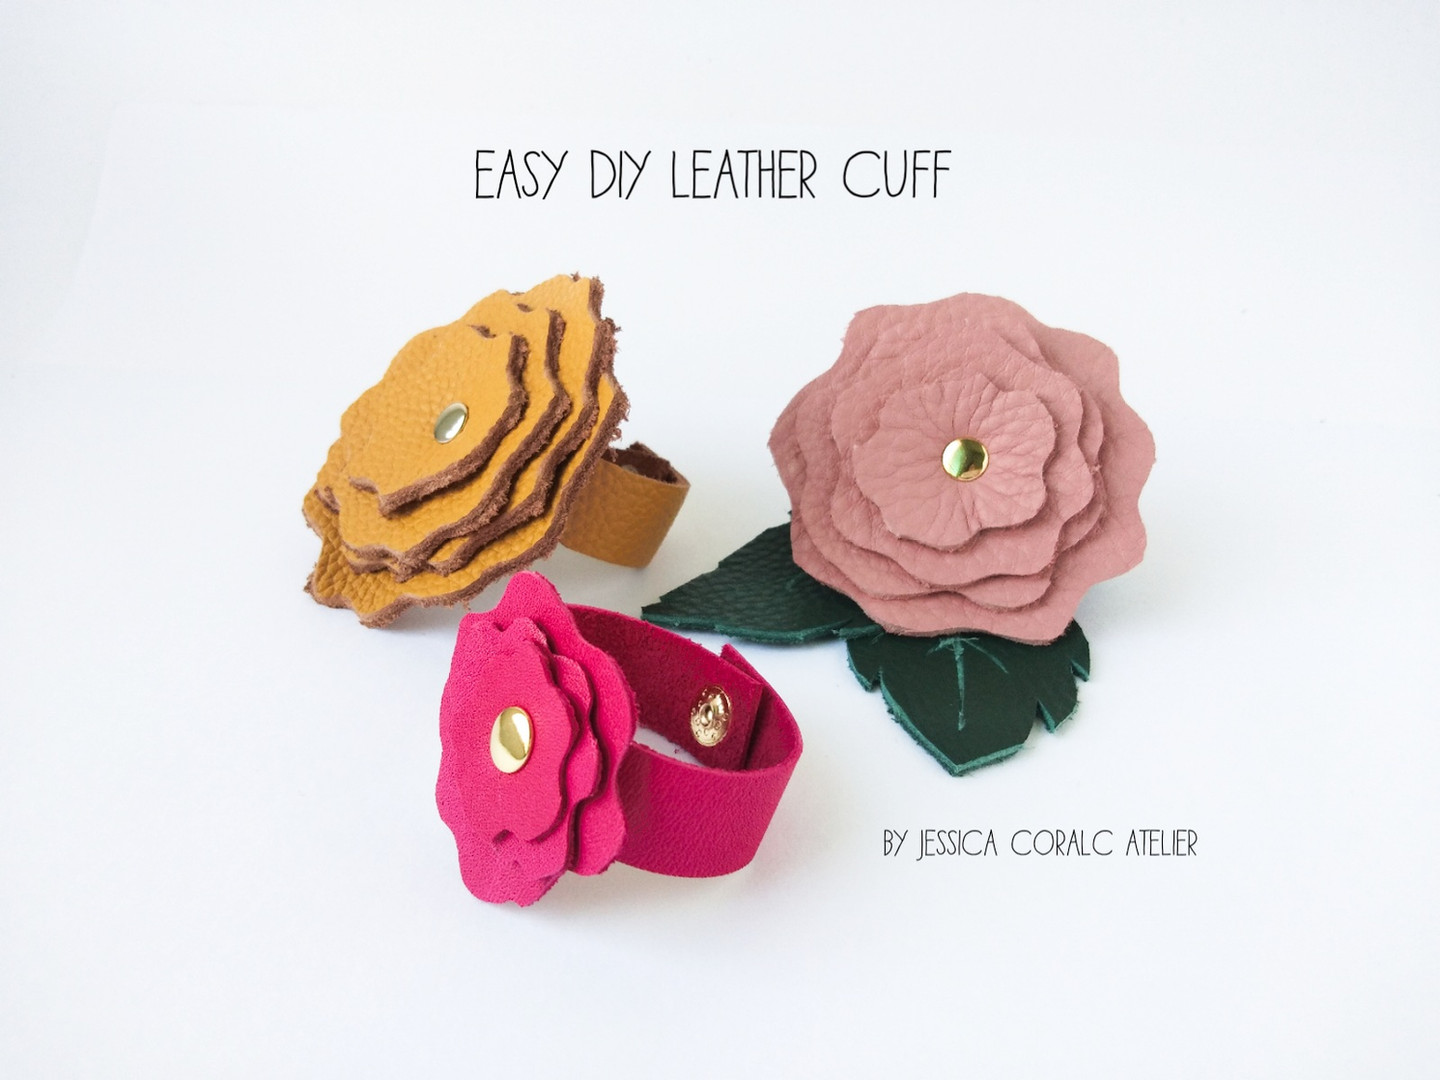 coralc_atelier_leather_diy_kit_flower cu